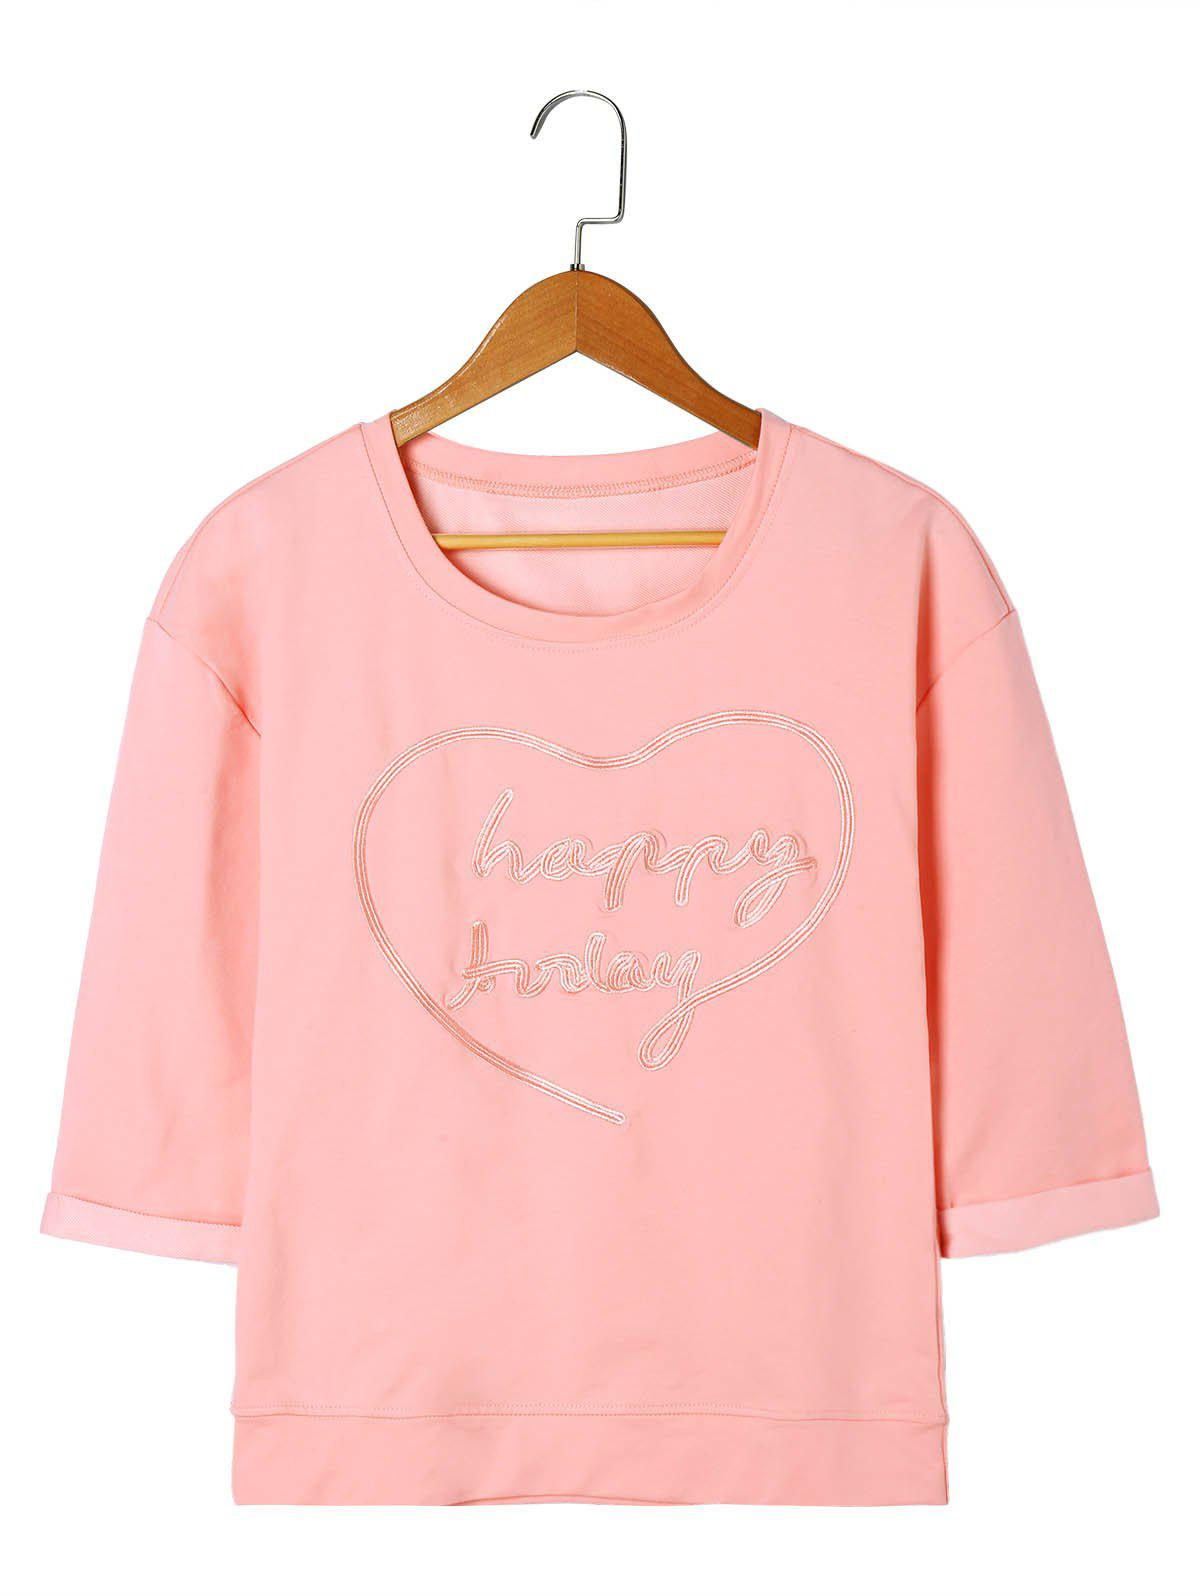 Letter Embroidery T-shirt - LIGHT PINK XL